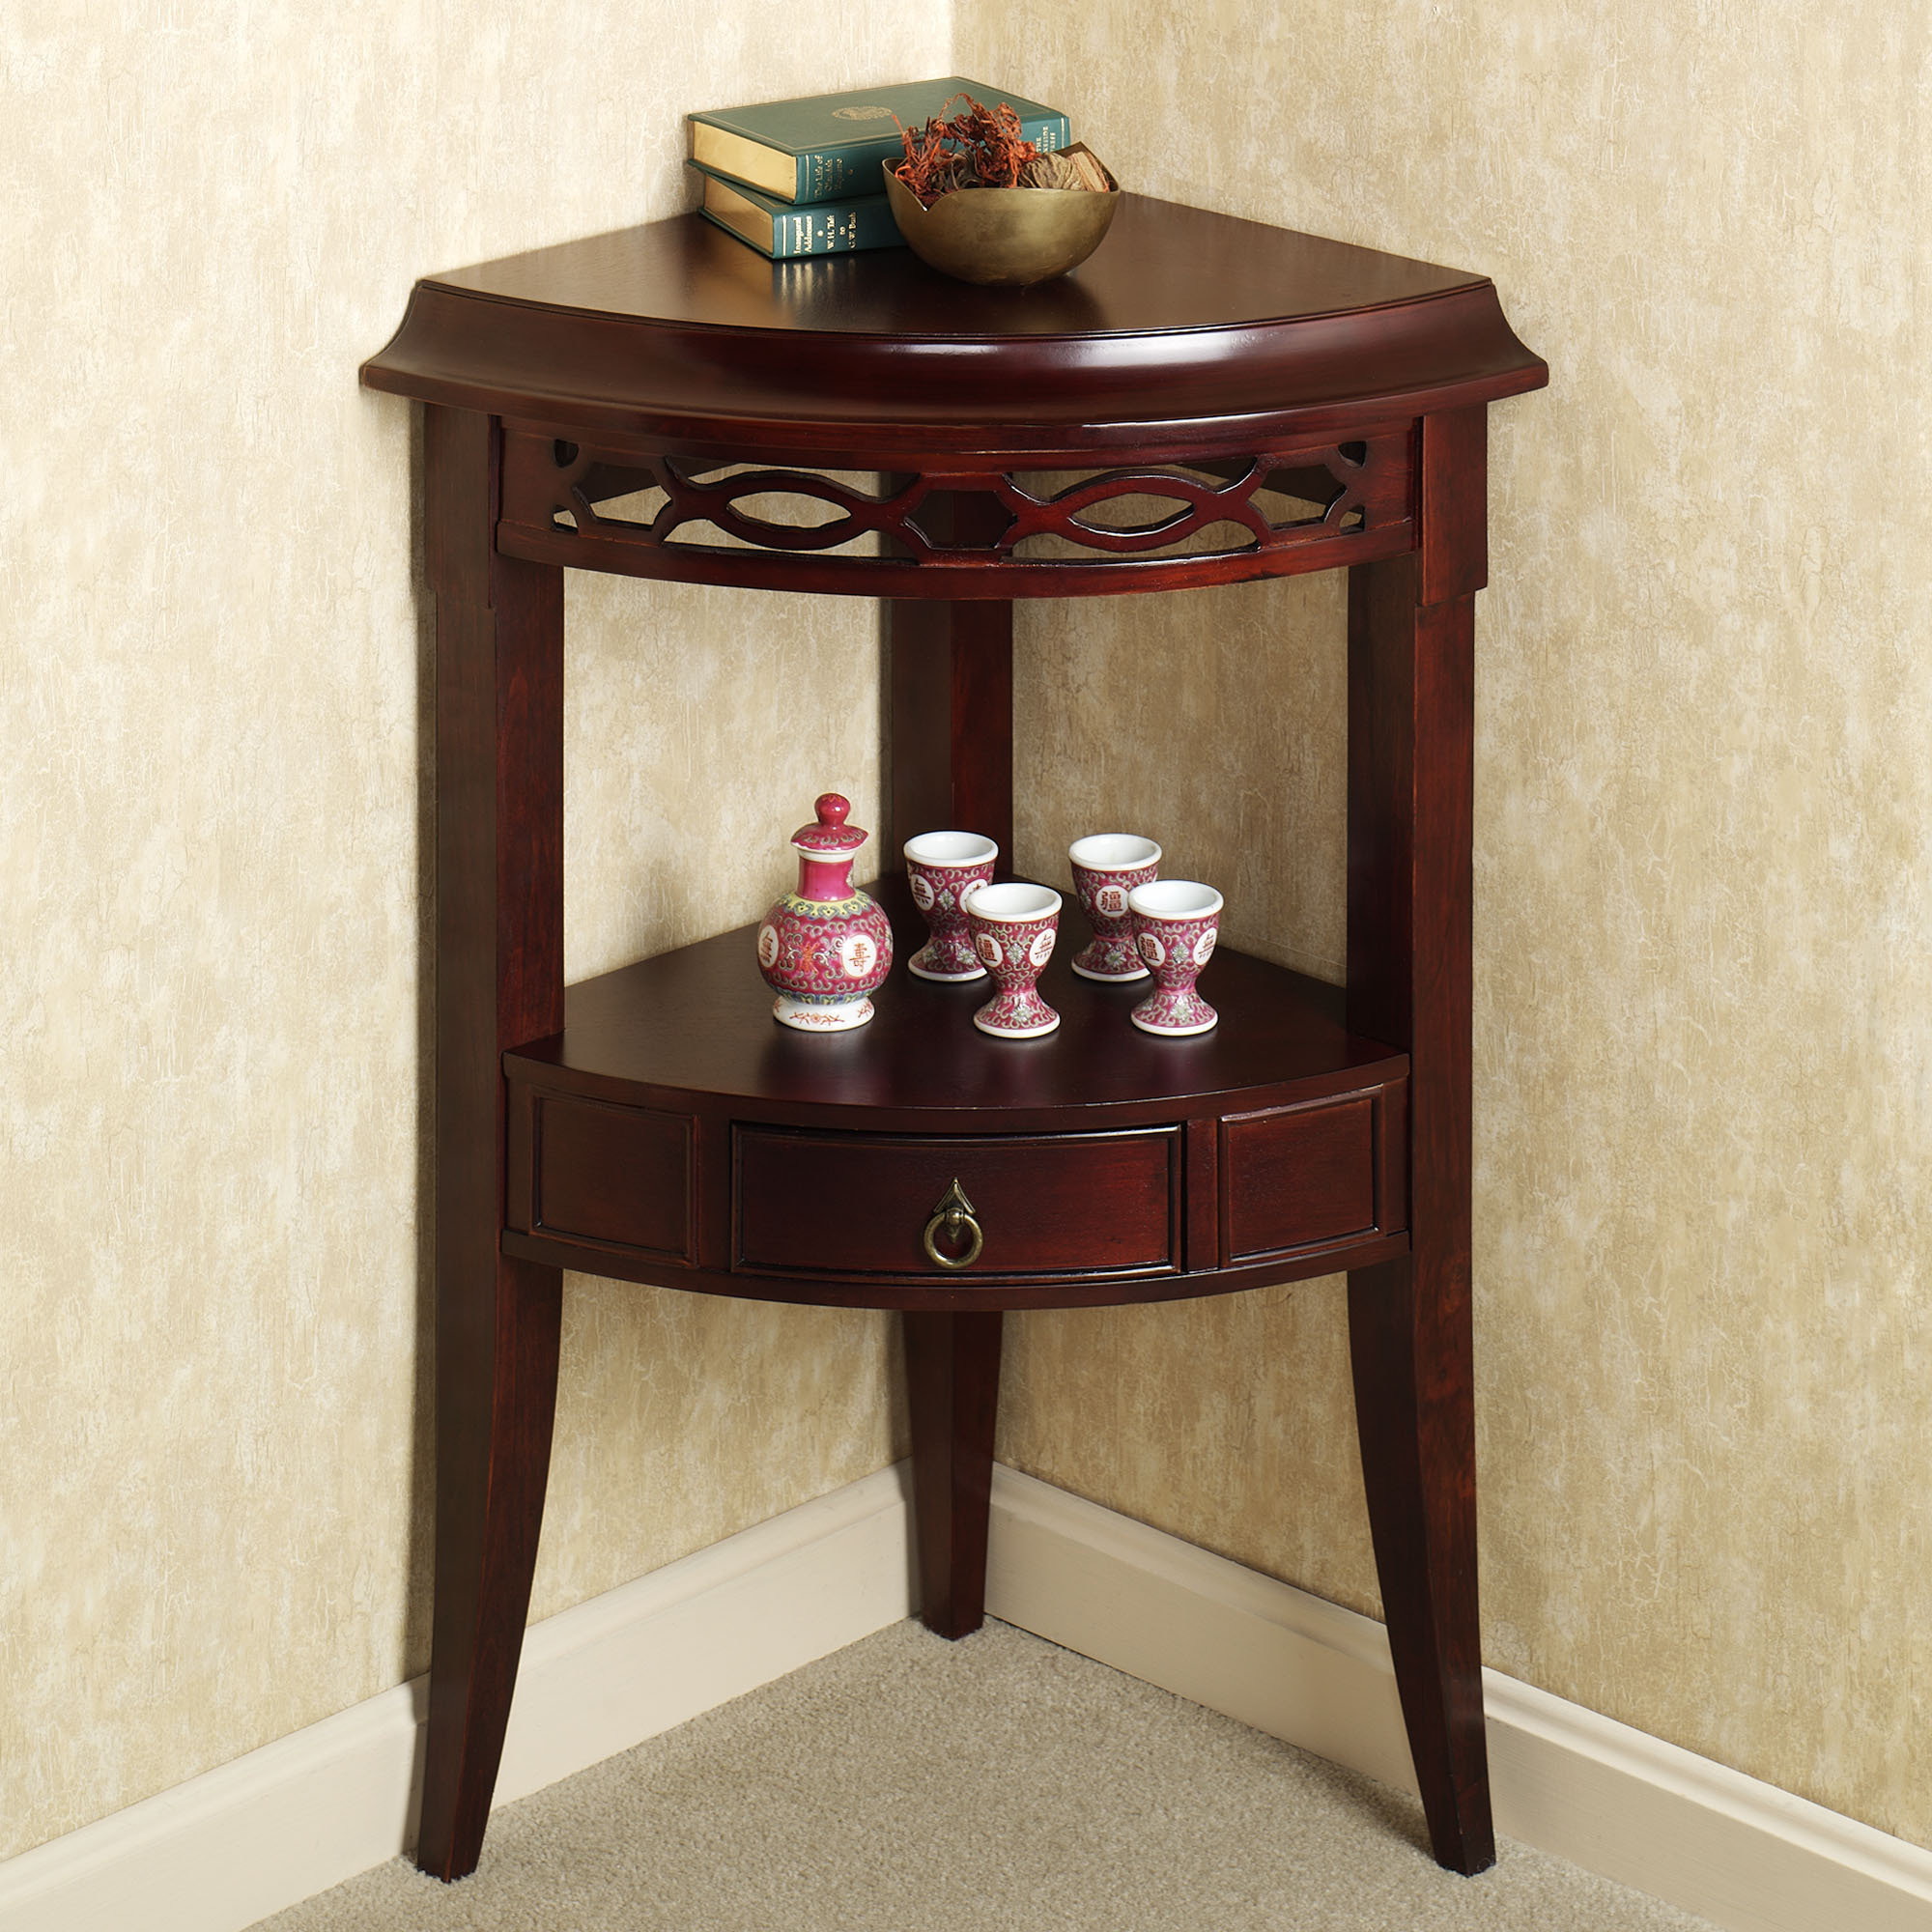 accent furniture storage small corner table classy hallway wicker patio white with very long narrow console astoria dining set nesting mirrored lingerie chest wells chair pottery